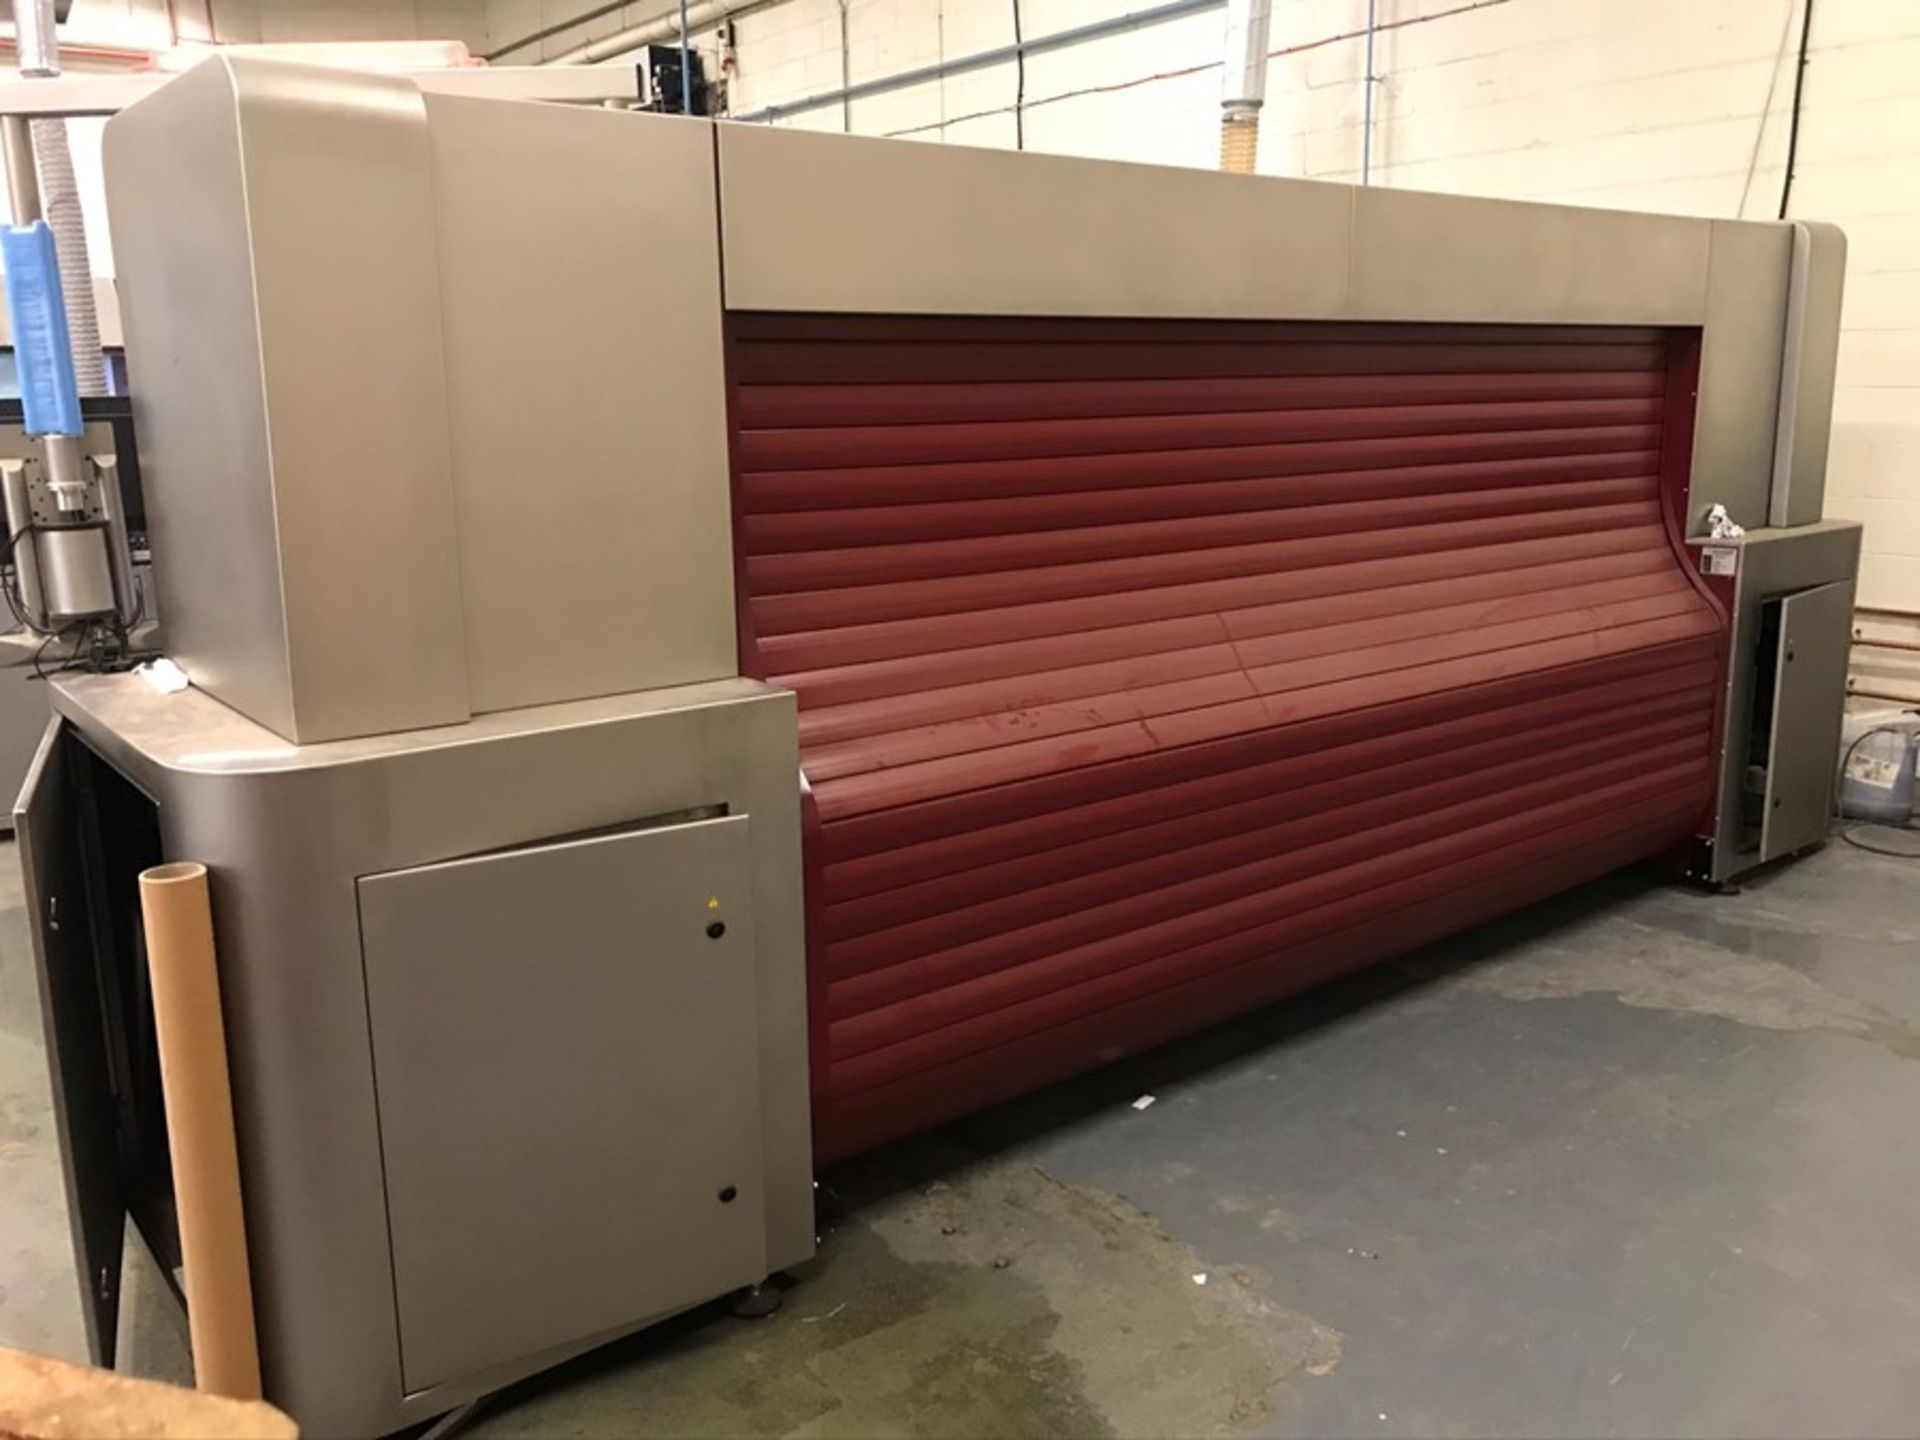 Hollanders Color Booster XL, Type B digital textile printer (2013) - Image 10 of 20